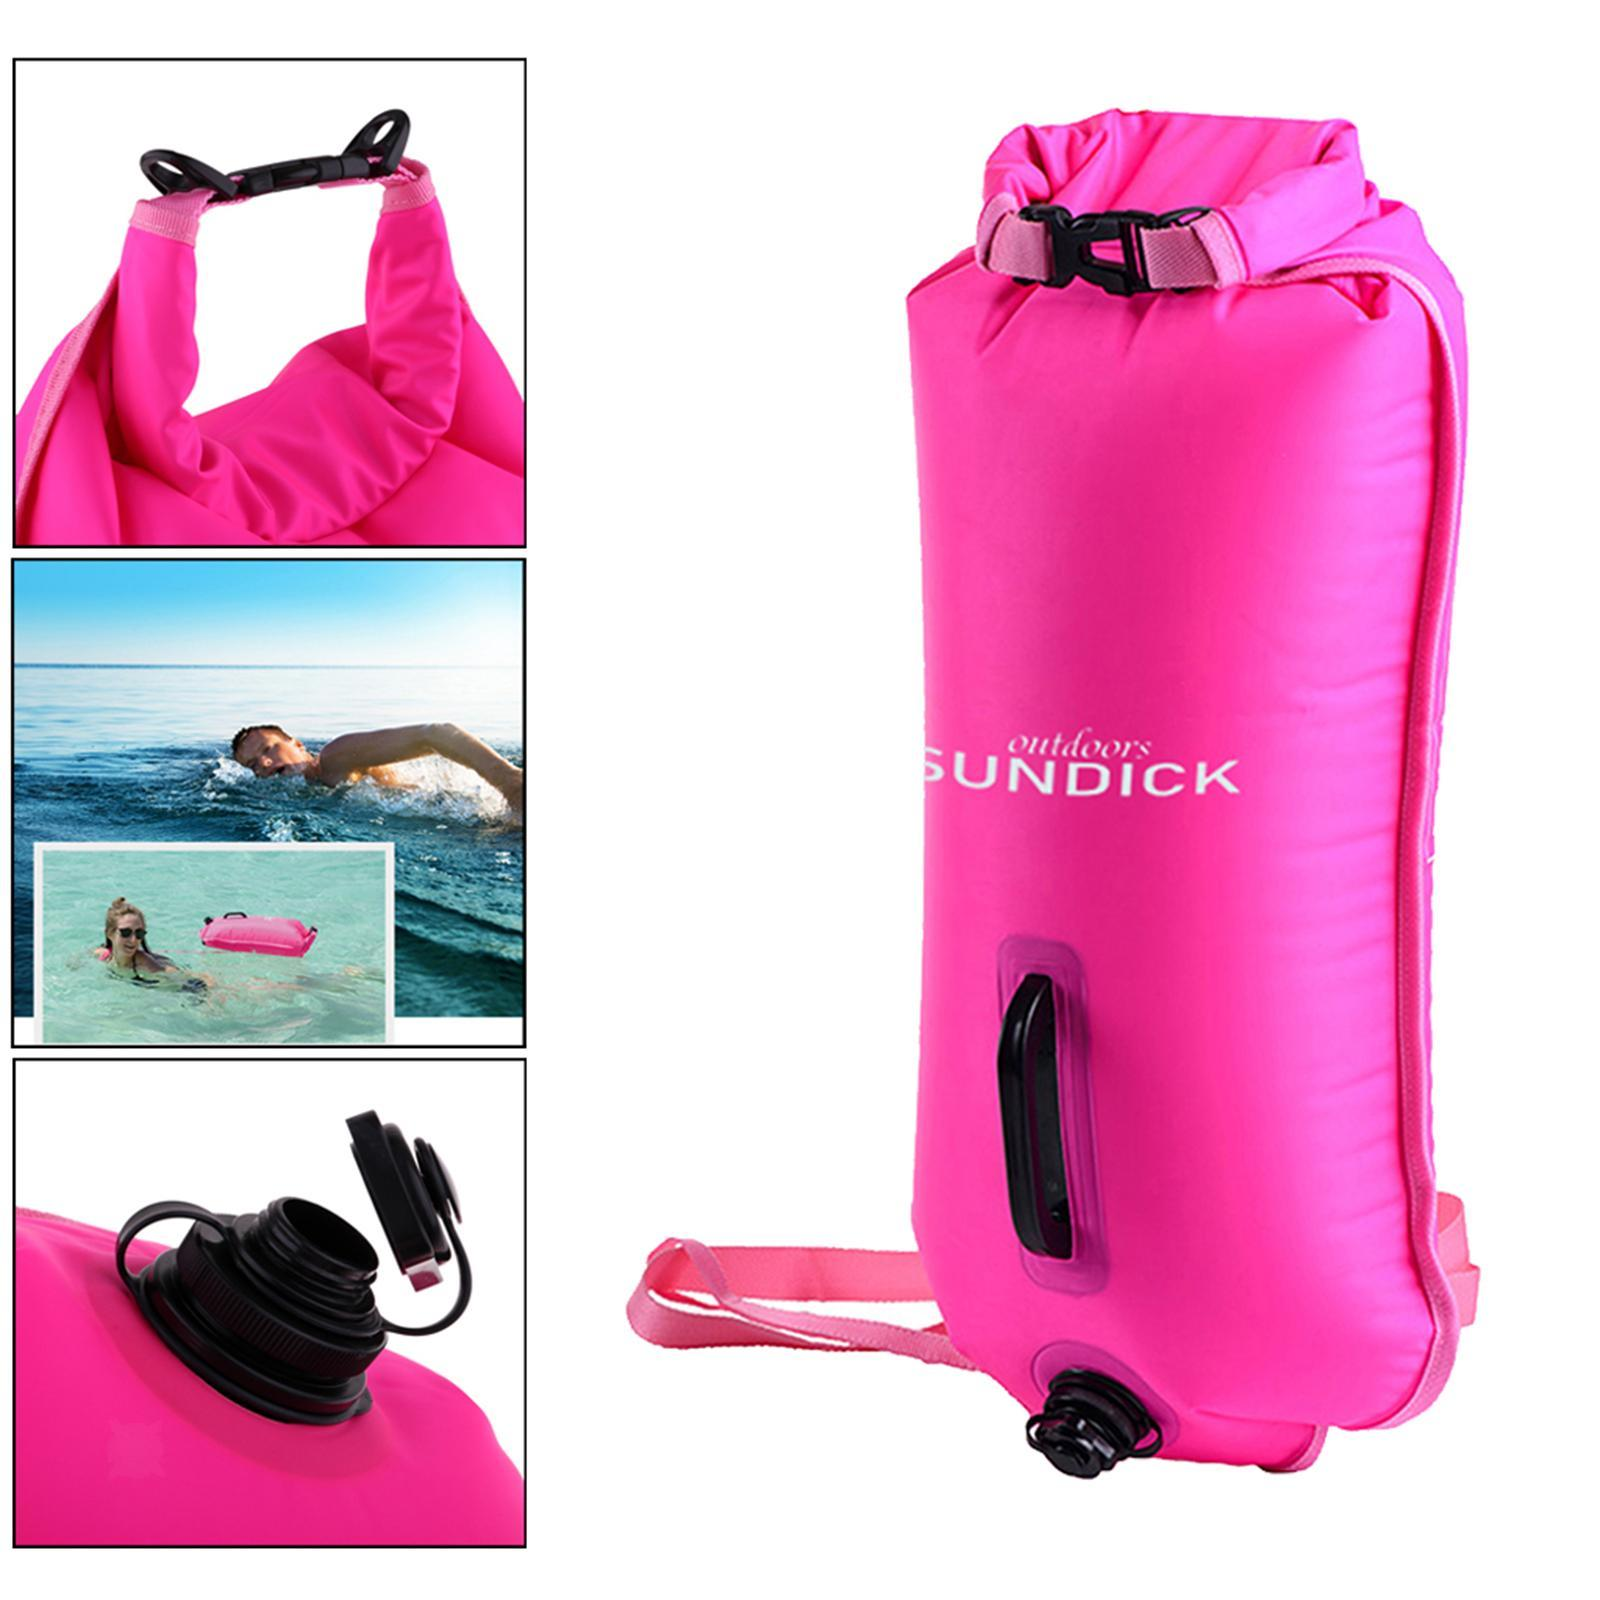 Safety-Swim-Buoy-Dry-Bag-Tow-Float-for-Open-Water-Swimmer-Swimming-Training thumbnail 8